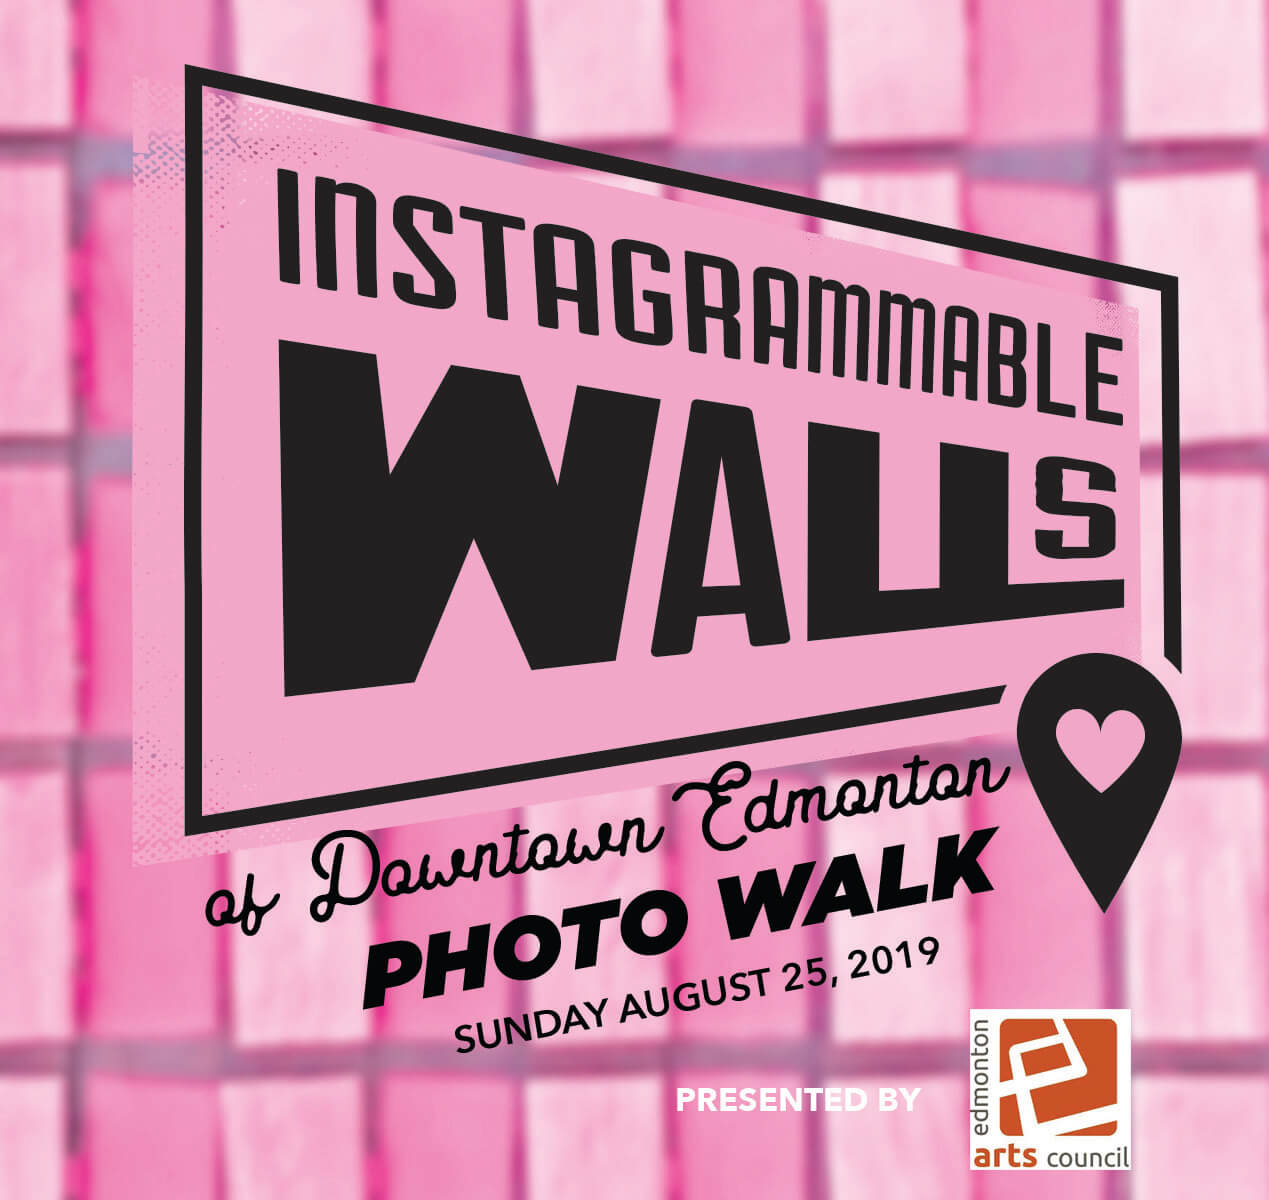 Instagrammable Wall Photo Walk Downtown Edmonton presented by Edmonton Arts Council